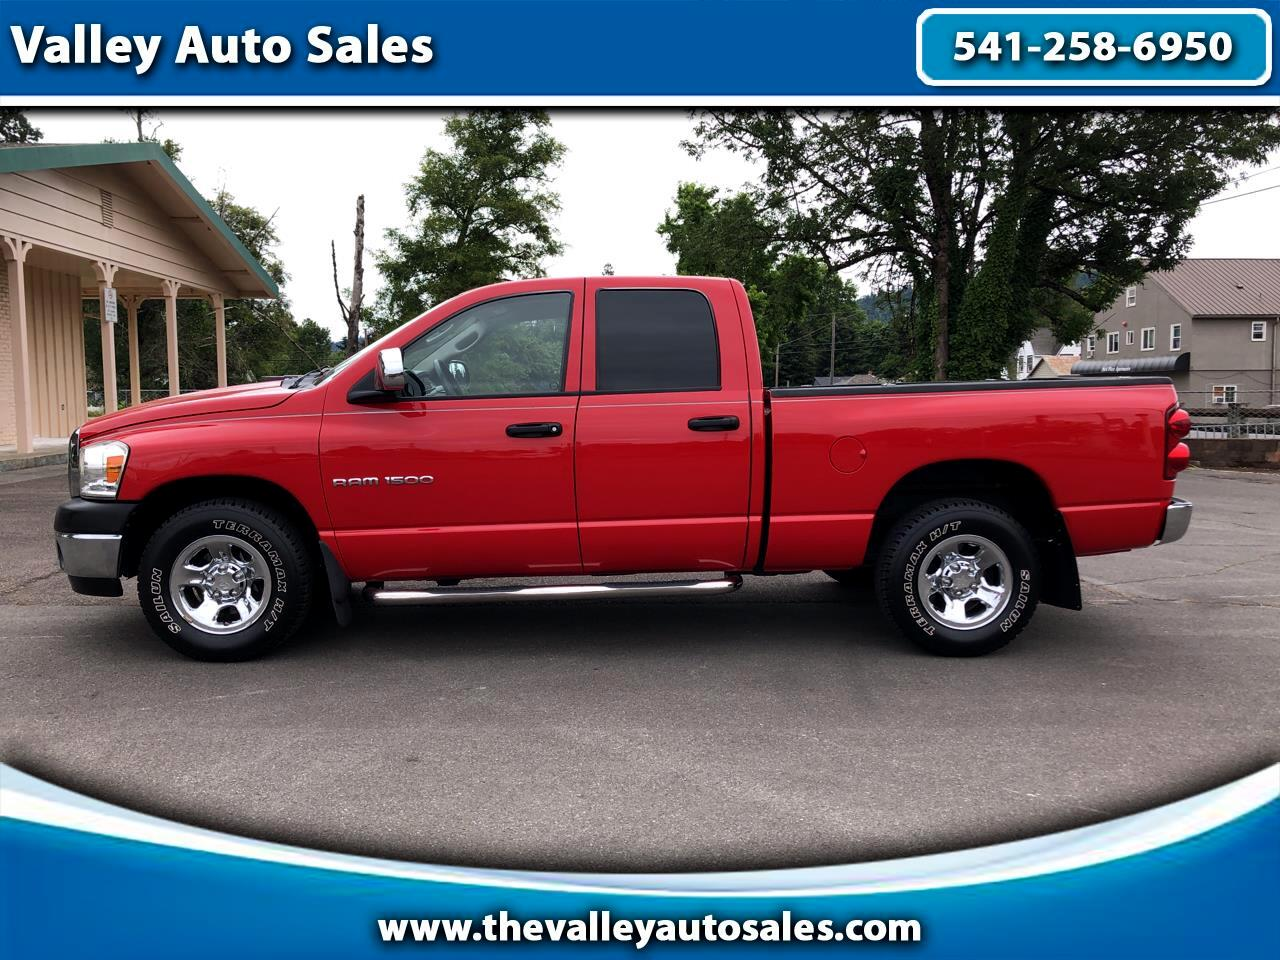 Dodge Ram 1500 SXT Quad Cab Long Bed 2WD 2008